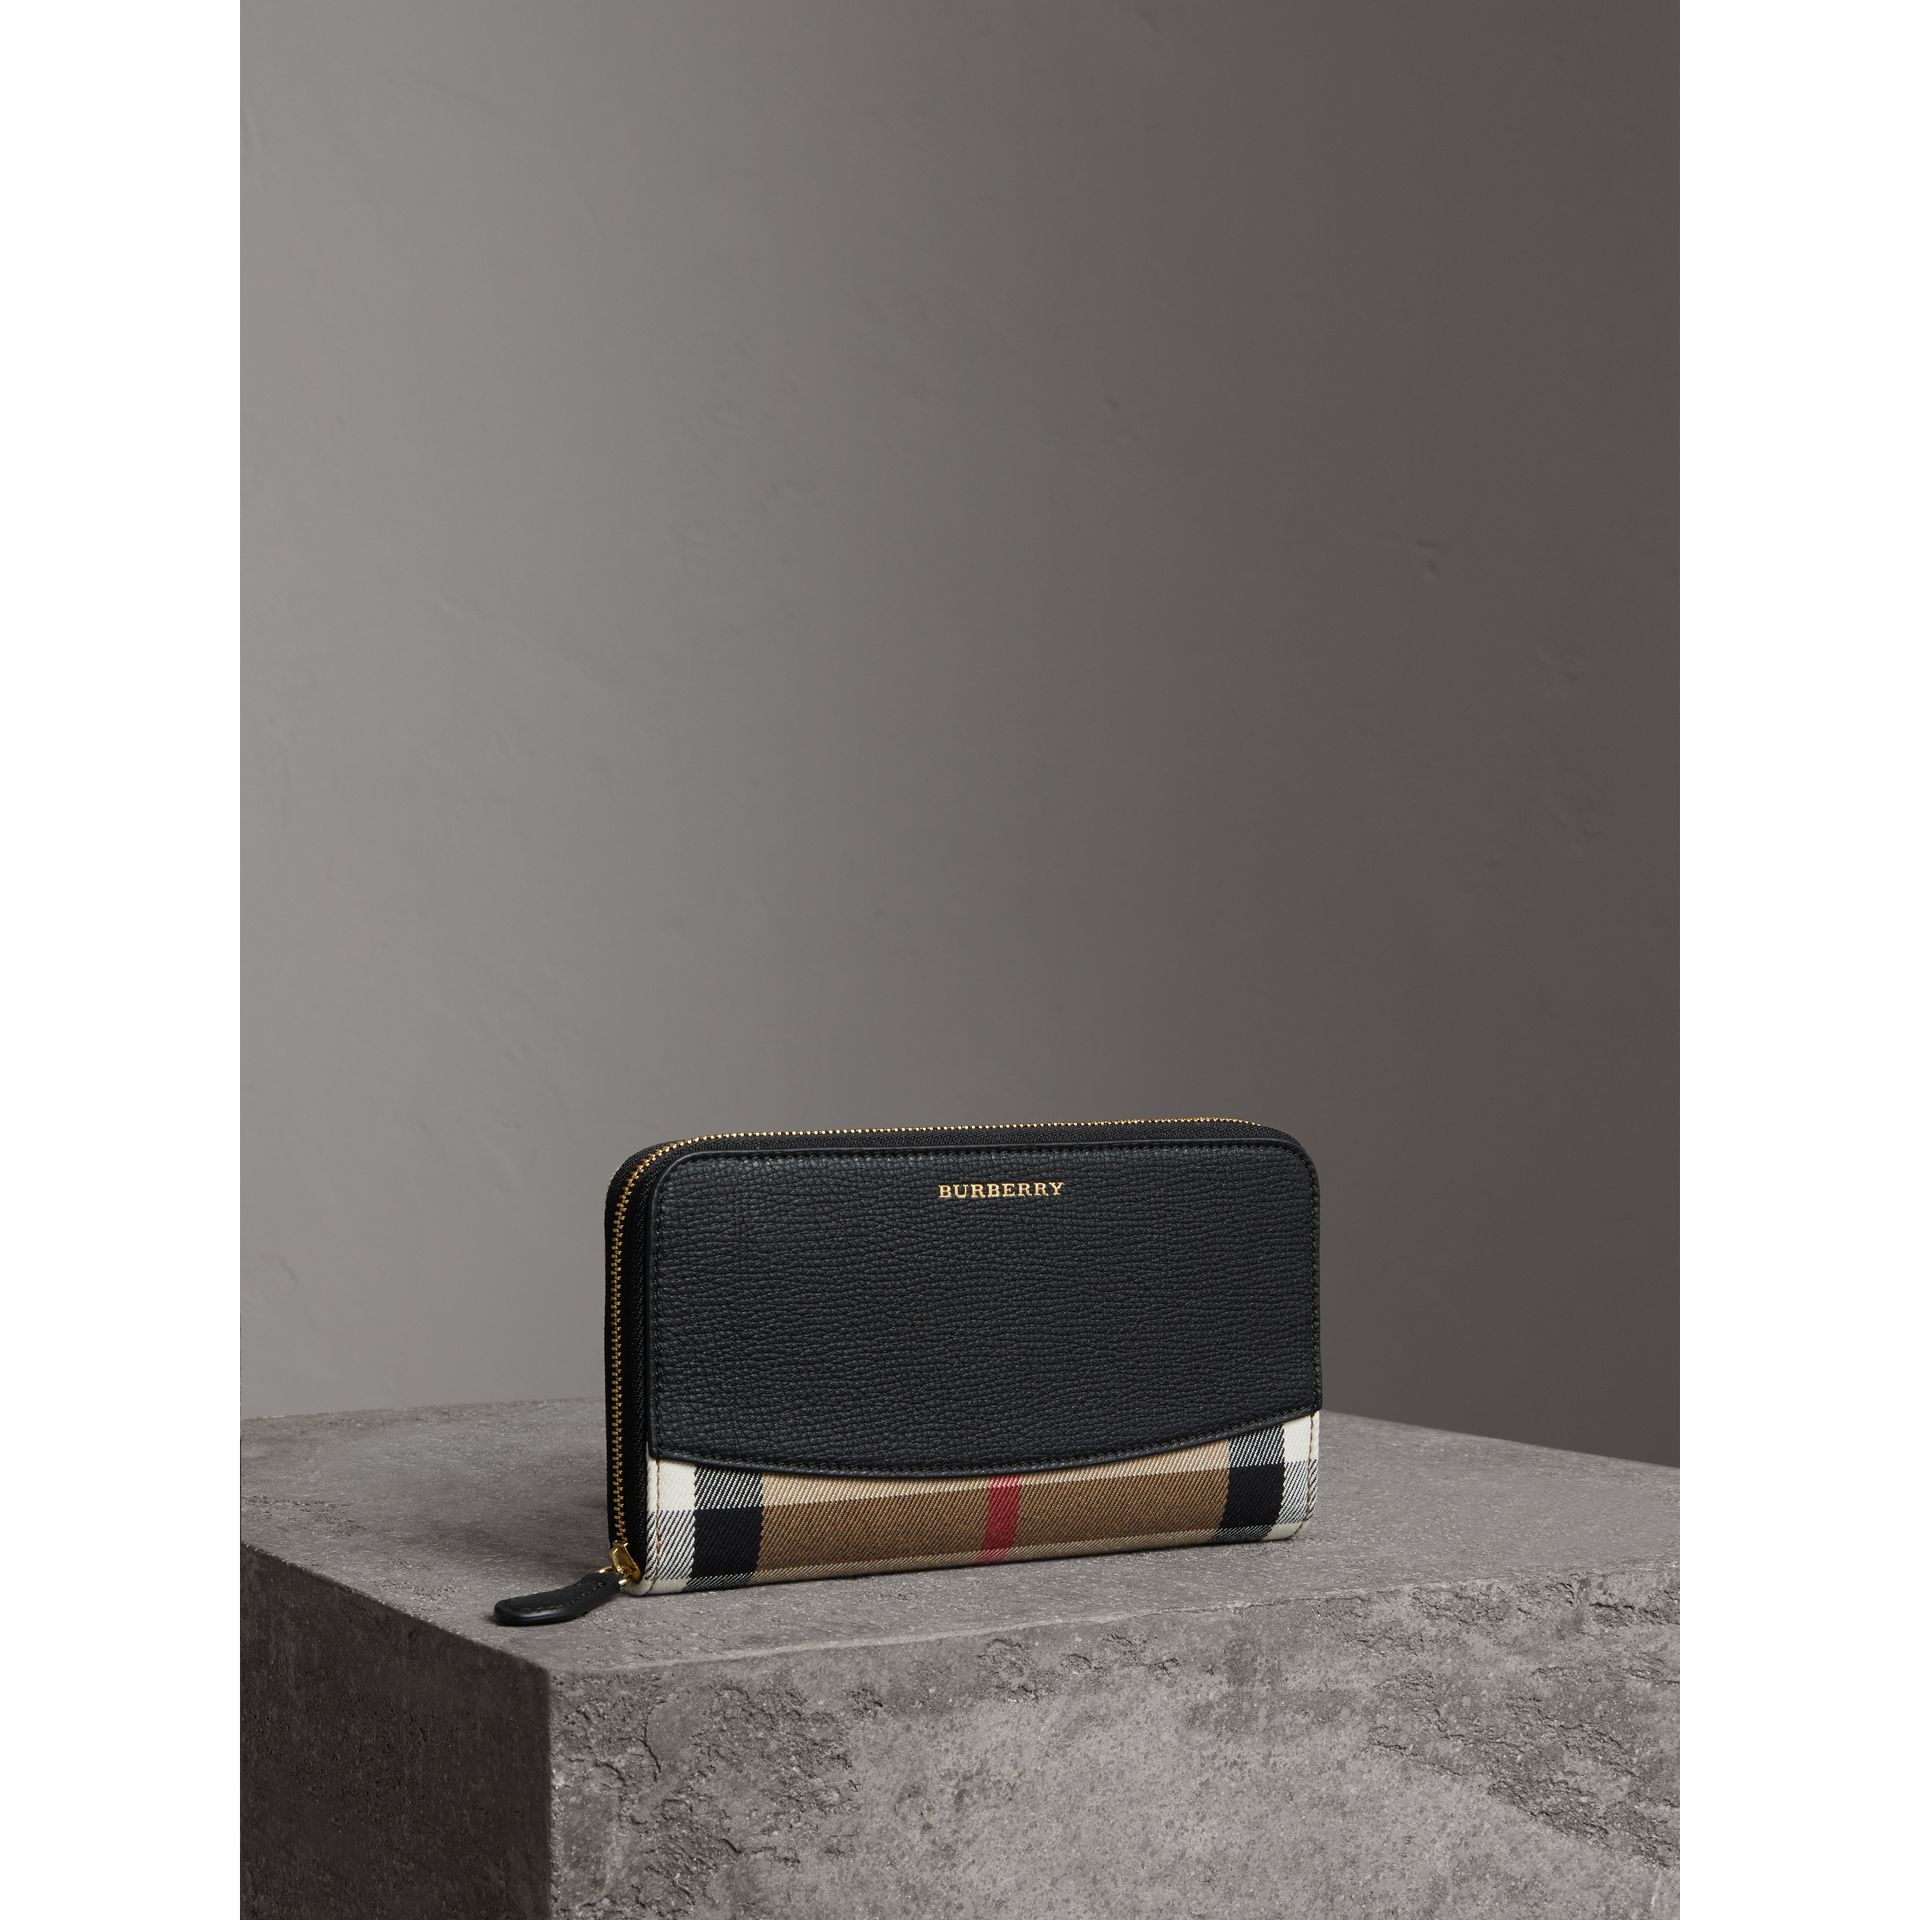 House Check and Leather Ziparound Wallet in Black - Women | Burberry - gallery image 1